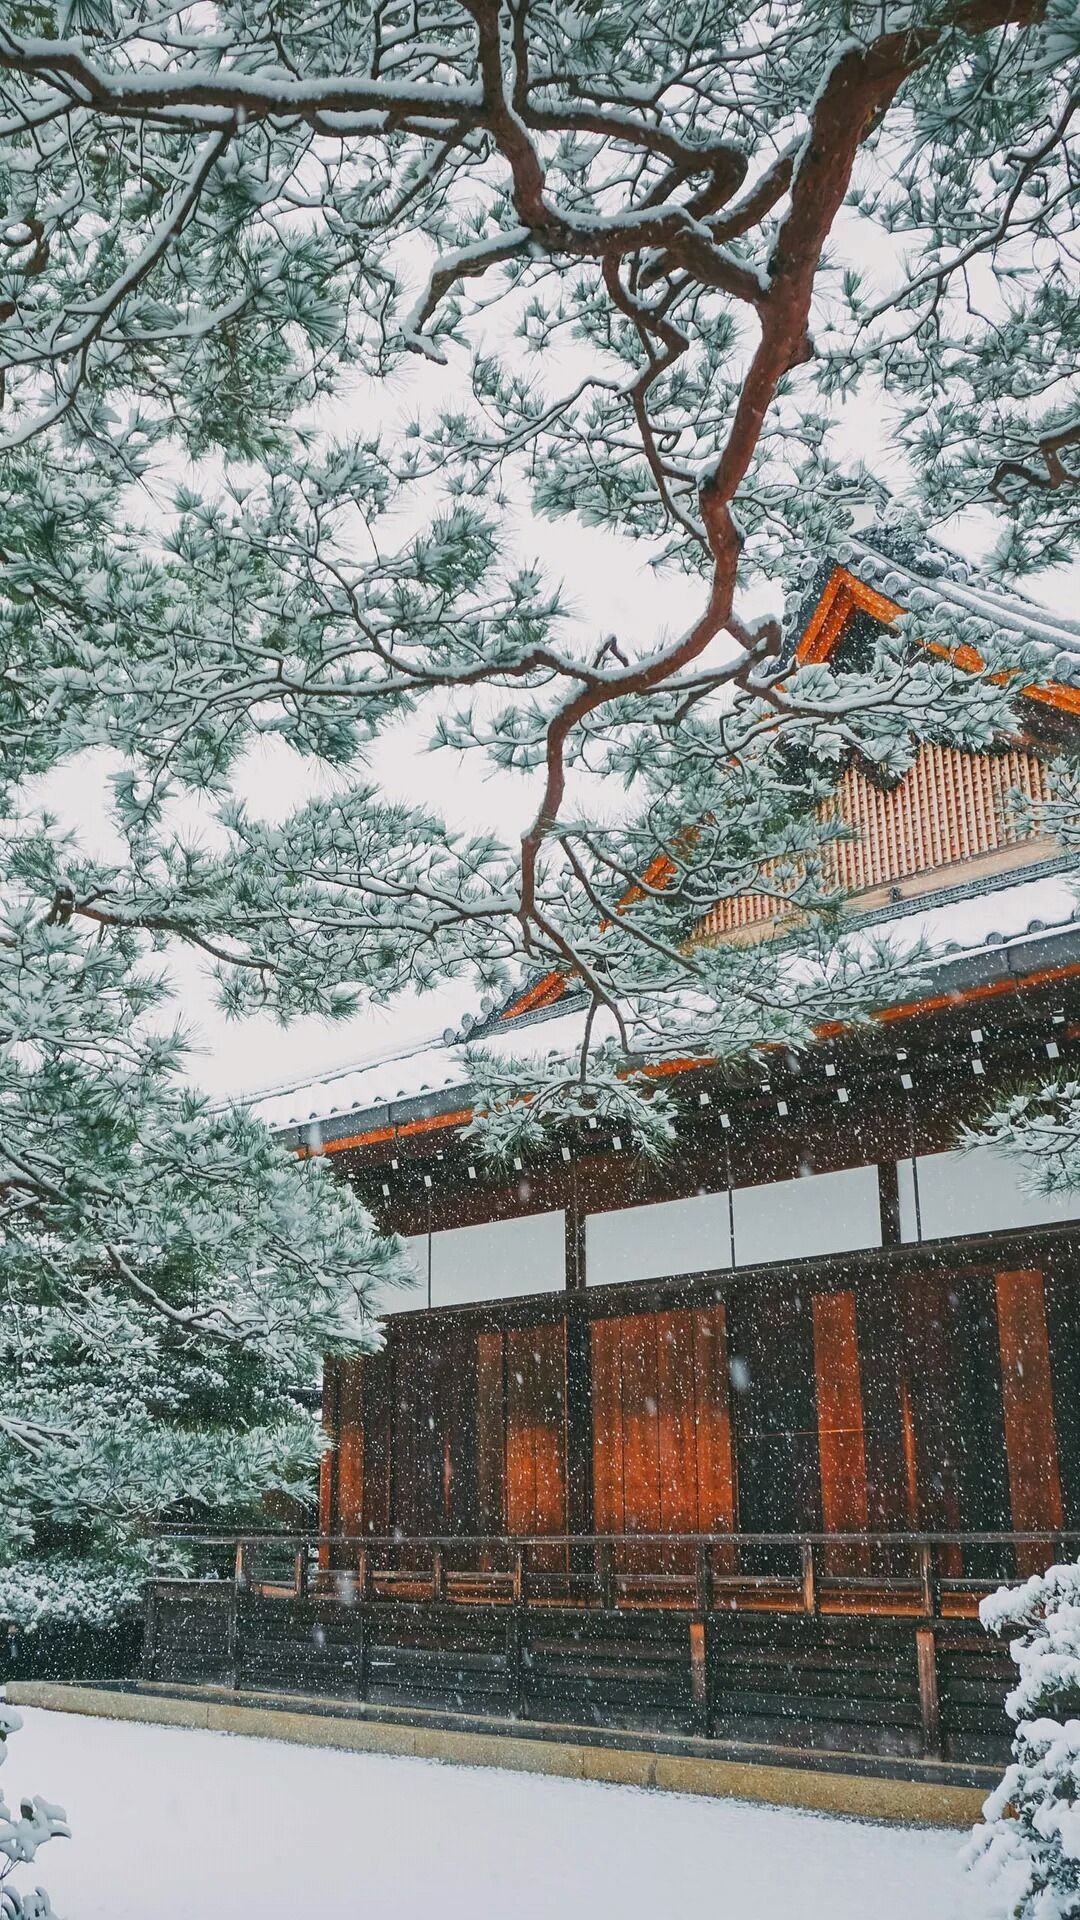 Winter Snowing in Japan. Asian or oriental houses and